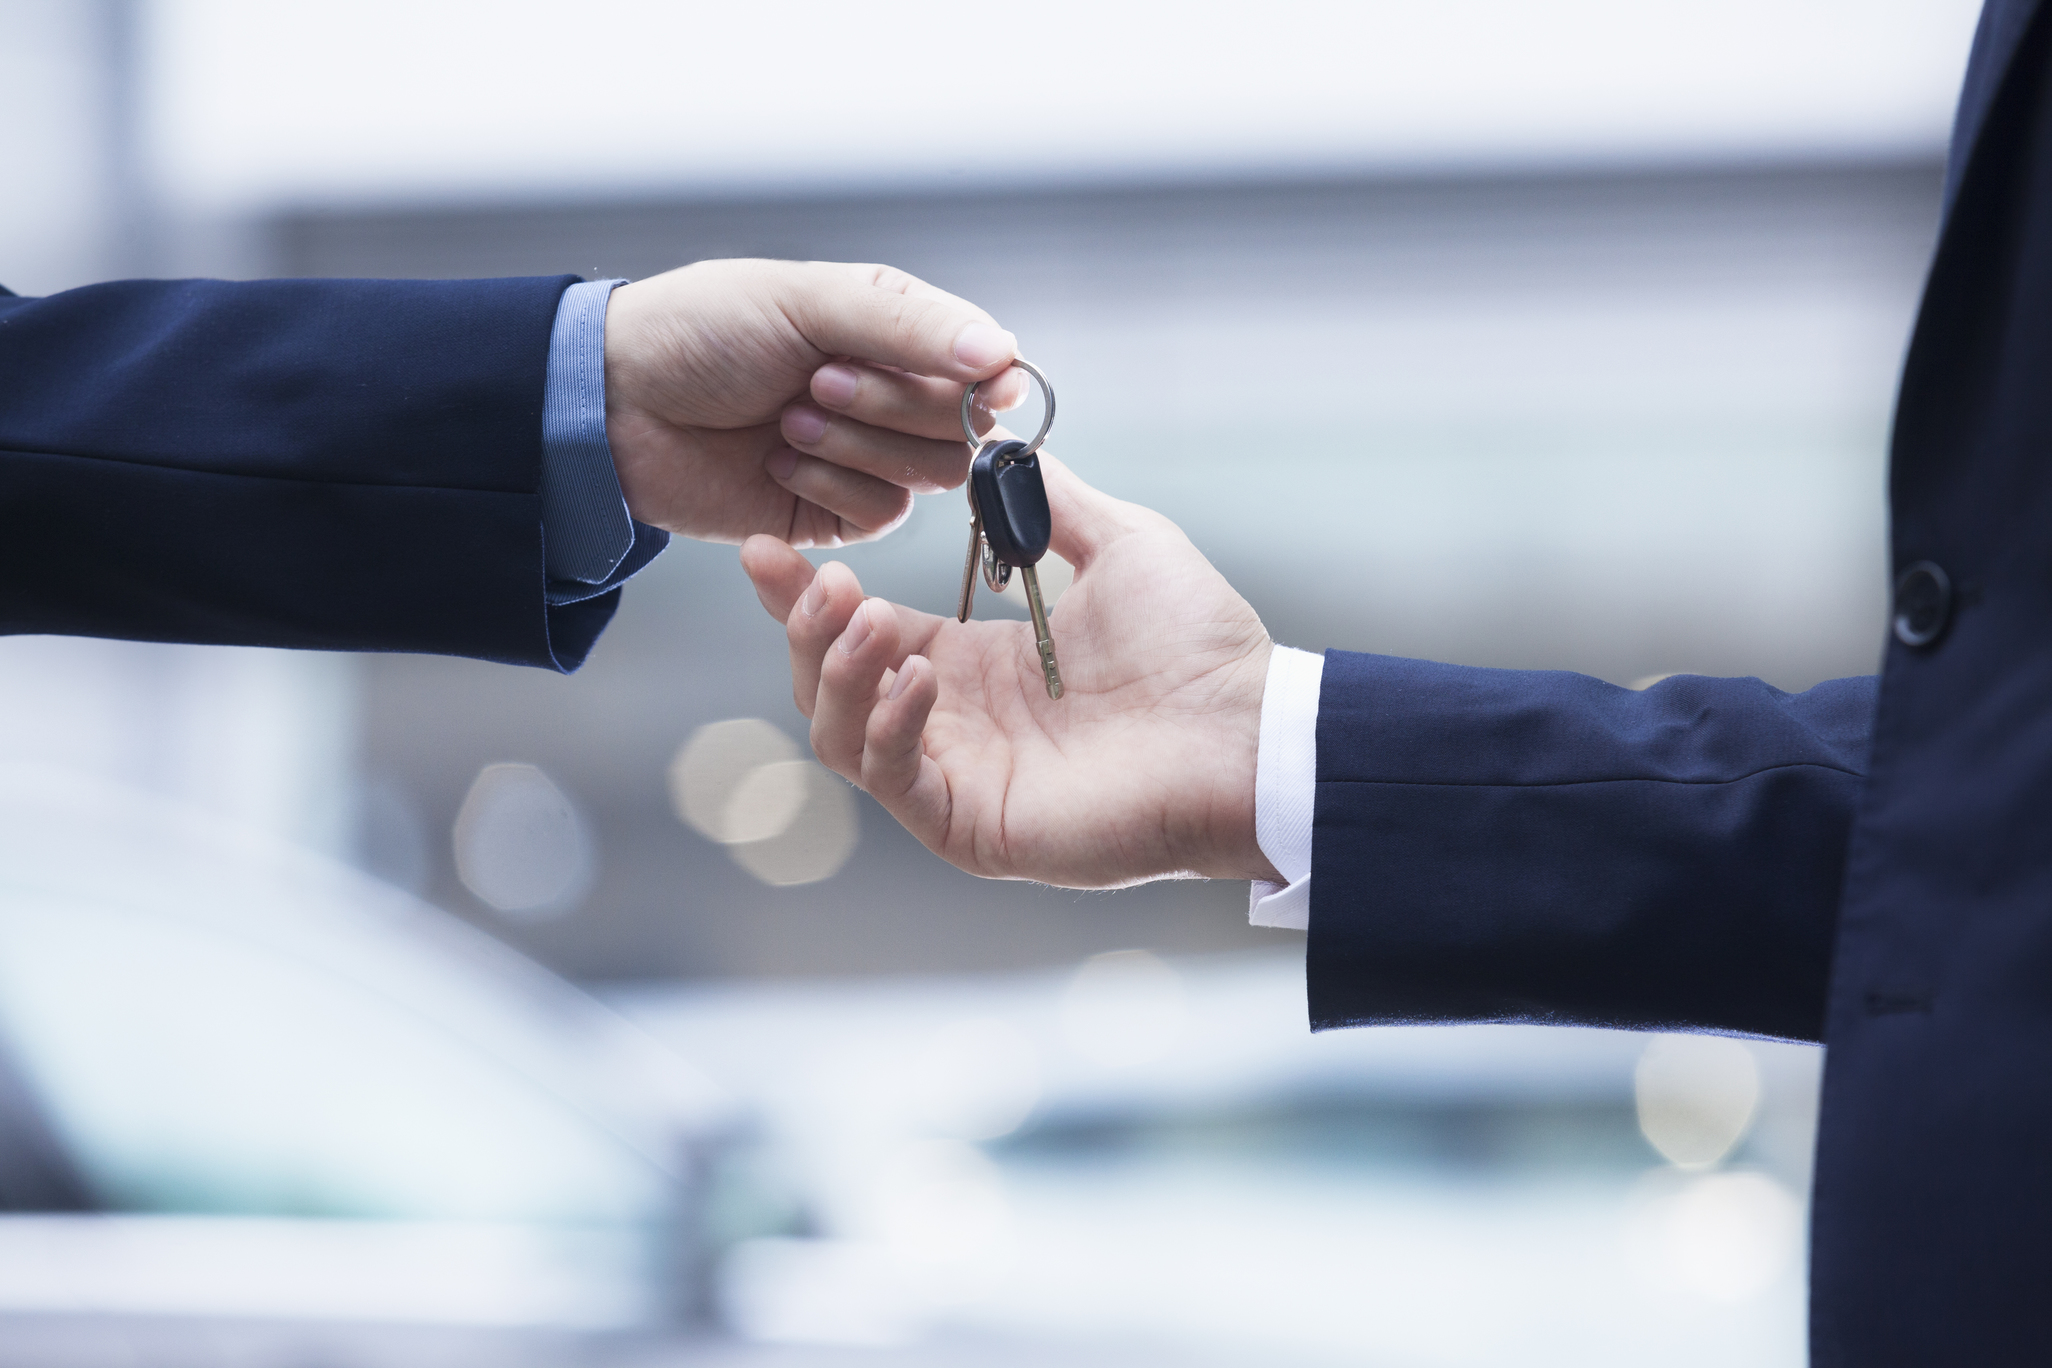 3 Ways to Find the Best Car to Purchase